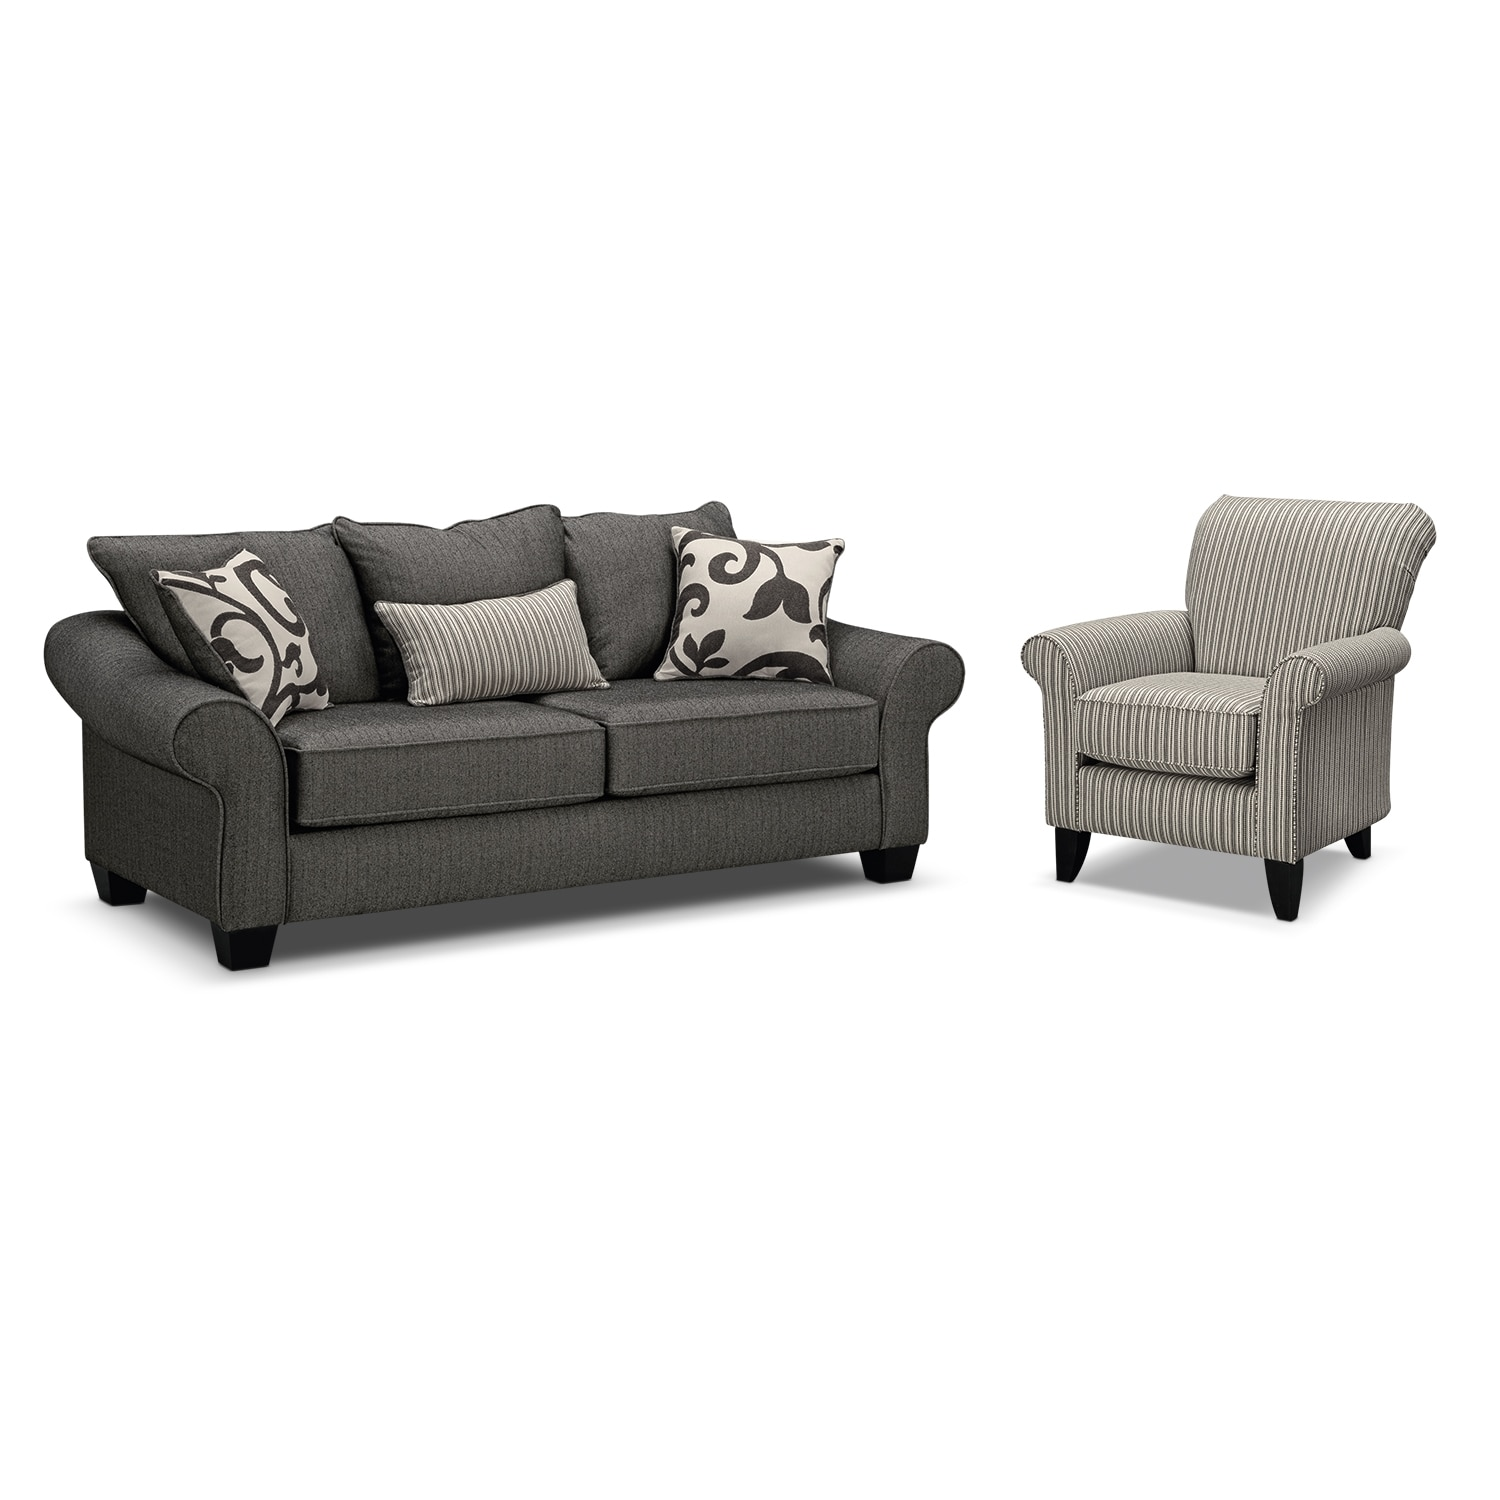 Colette Sofa And Accent Chair Set